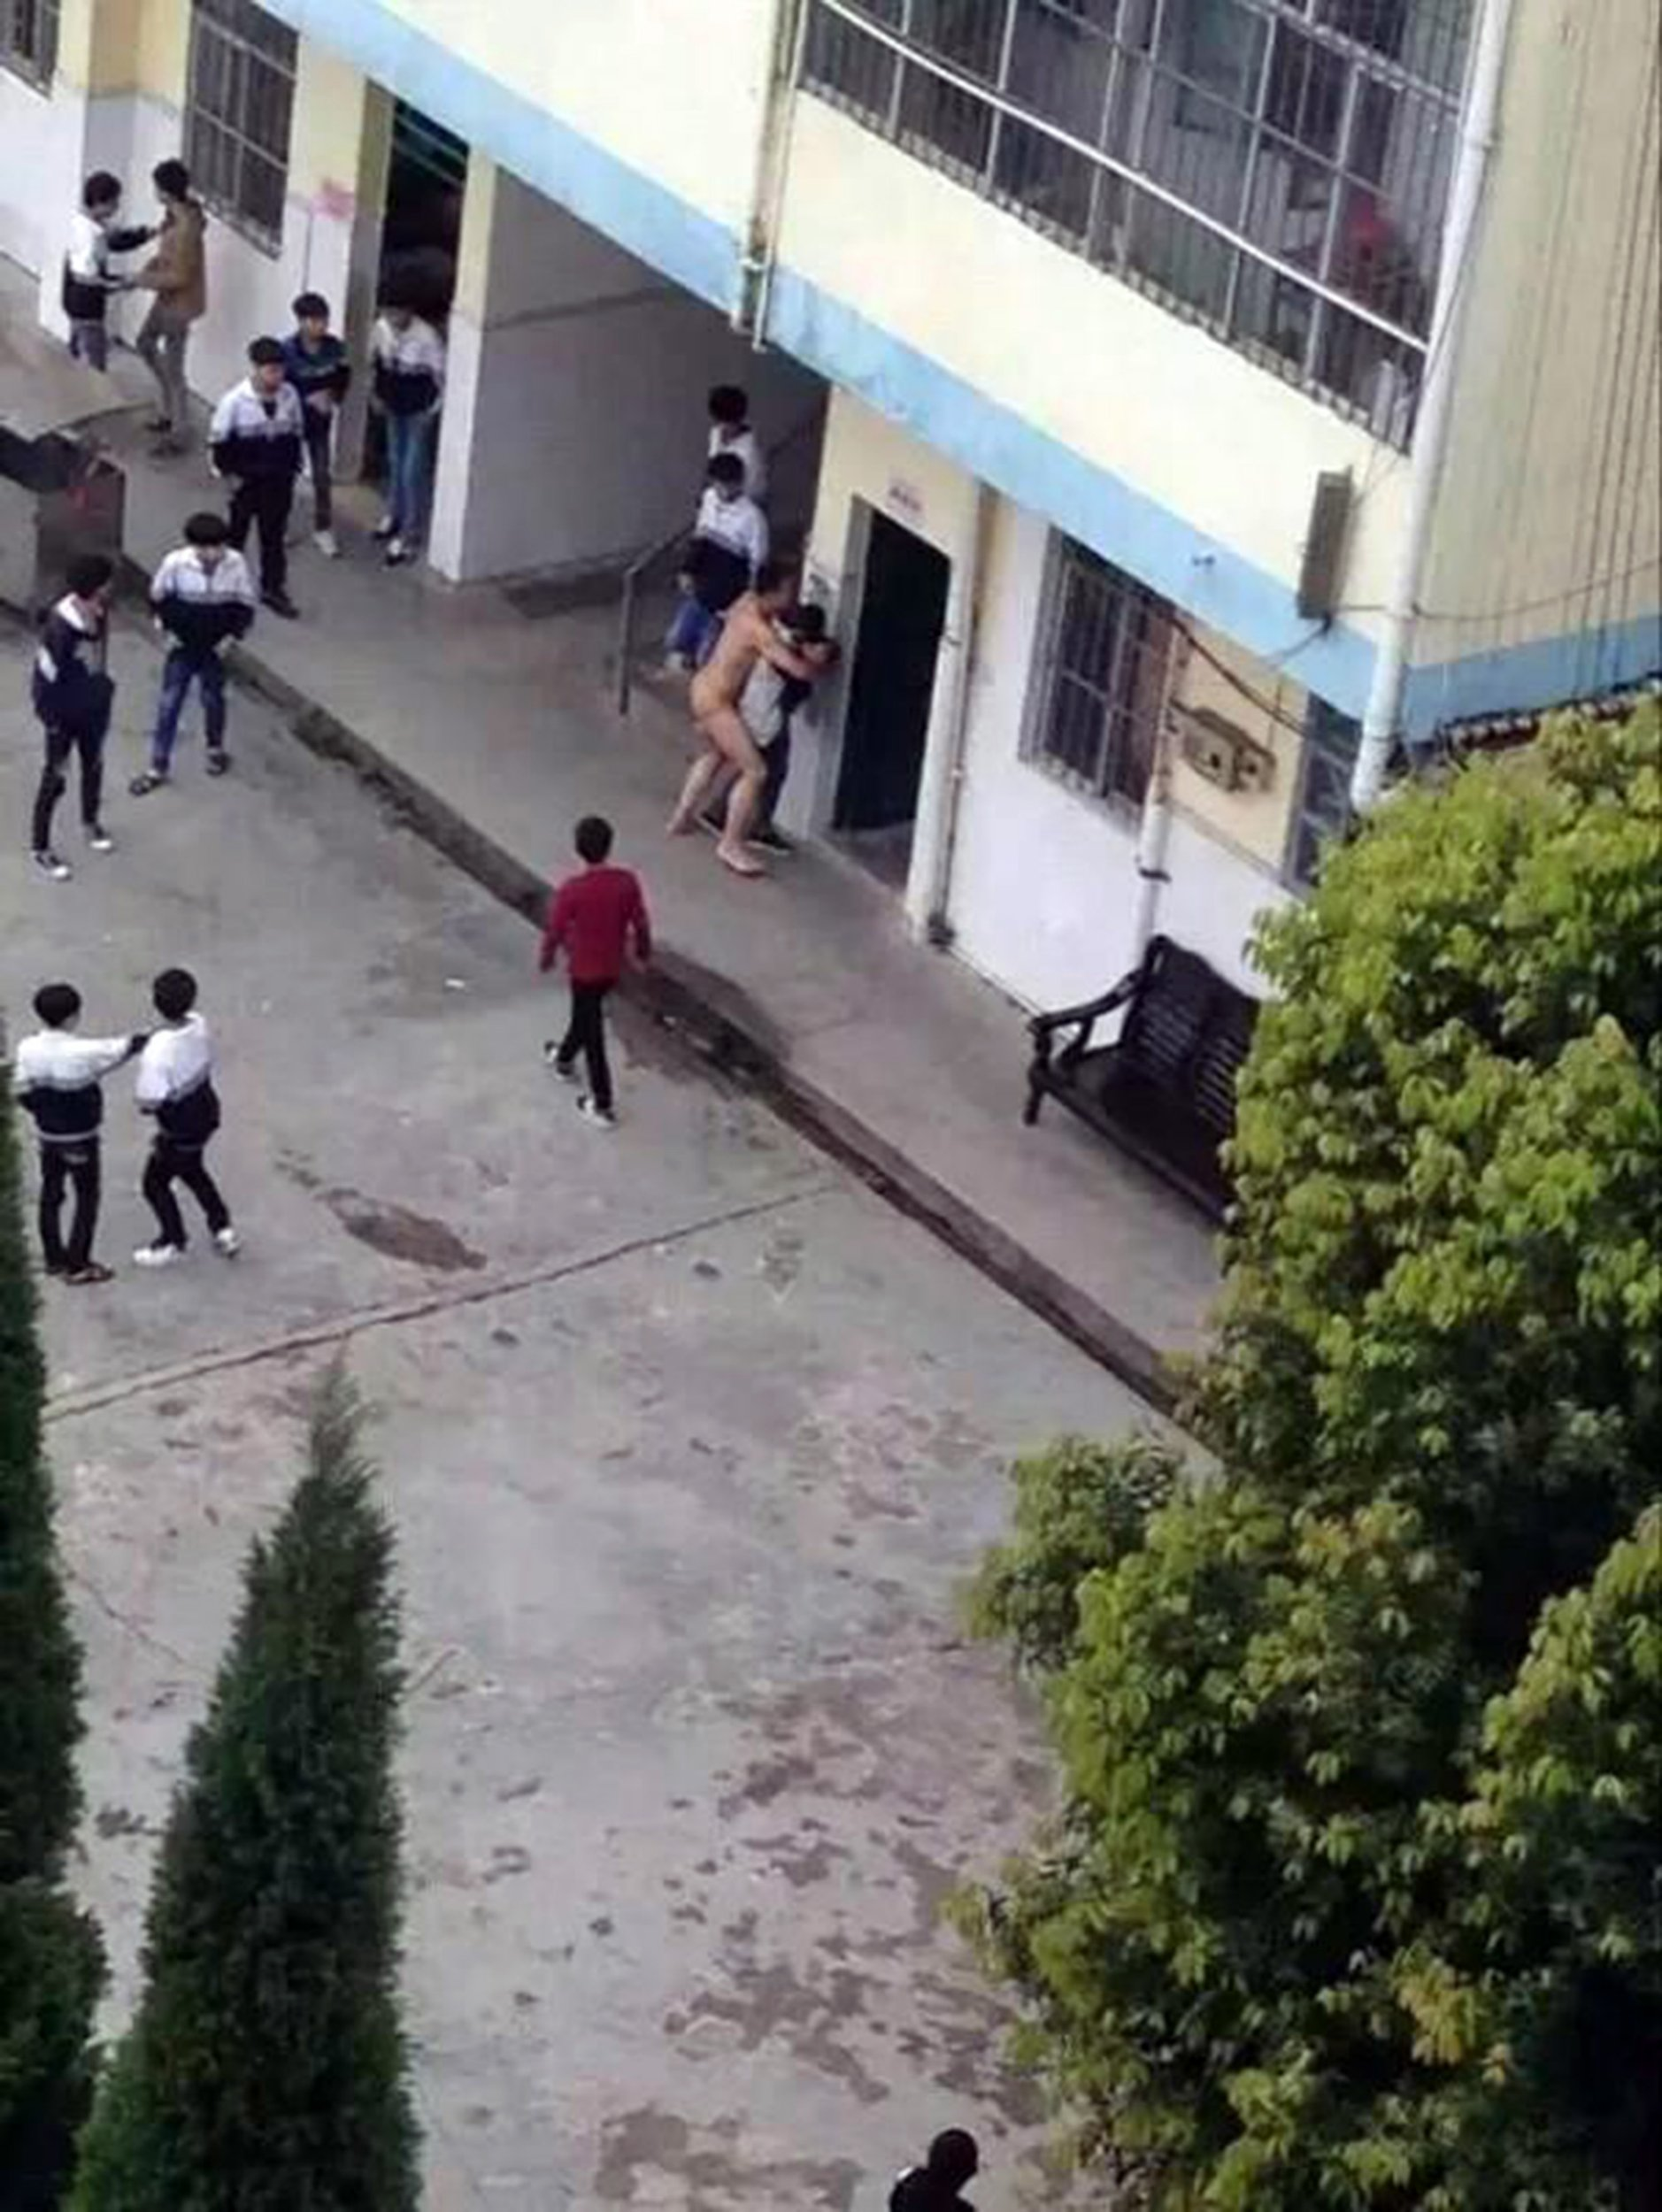 """Pic shows: Hou attempts to ërapeí the victim. Shocking photos have emerged from a Chinese high school where one of the faculty members stripped naked and attempted to rape a female pupil. The now viral photos show the employee, reportedly mentally ill, in the nude, bear-hugging the victim from behind while shocked pupils watch on in horror. Reports from Lingshan County, in South Chinaís Guangxi Zhuang Autonomous Region, said that the 30-year-old suspect, surnamed Hou, worked as a caretaker for Taiping Middle Schoolís laboratories. Hou is said to have stormed out of a school building unclothed, after which he picked out a female pupil at random and began ëharassingí her. As at least six other schoolboys stood watching in shock, Hou pushed the victim against the exterior wall of a classroom while she screamed for help. Nearby teachers soon intervened and helped subdue Hou, who had been employed by the high school for a number of years. Local authorities then detained Hou, who reportedly has a history of suffering mental illness. The specifics of Houís illness were not mentioned in reports. A police spokesman said: """"The suspect appears to have been suffering from mental disorders since 2011, but doctors said he would have been fine if the illness had not returned in two years."""" The victim reportedly did not suffer any physical pain, but will be referred to a psychiatrist for possible emotional and psychological trauma. It is as of yet unclear whether Hou will be immediately relieved of his position at the school following the incident. (ends)"""